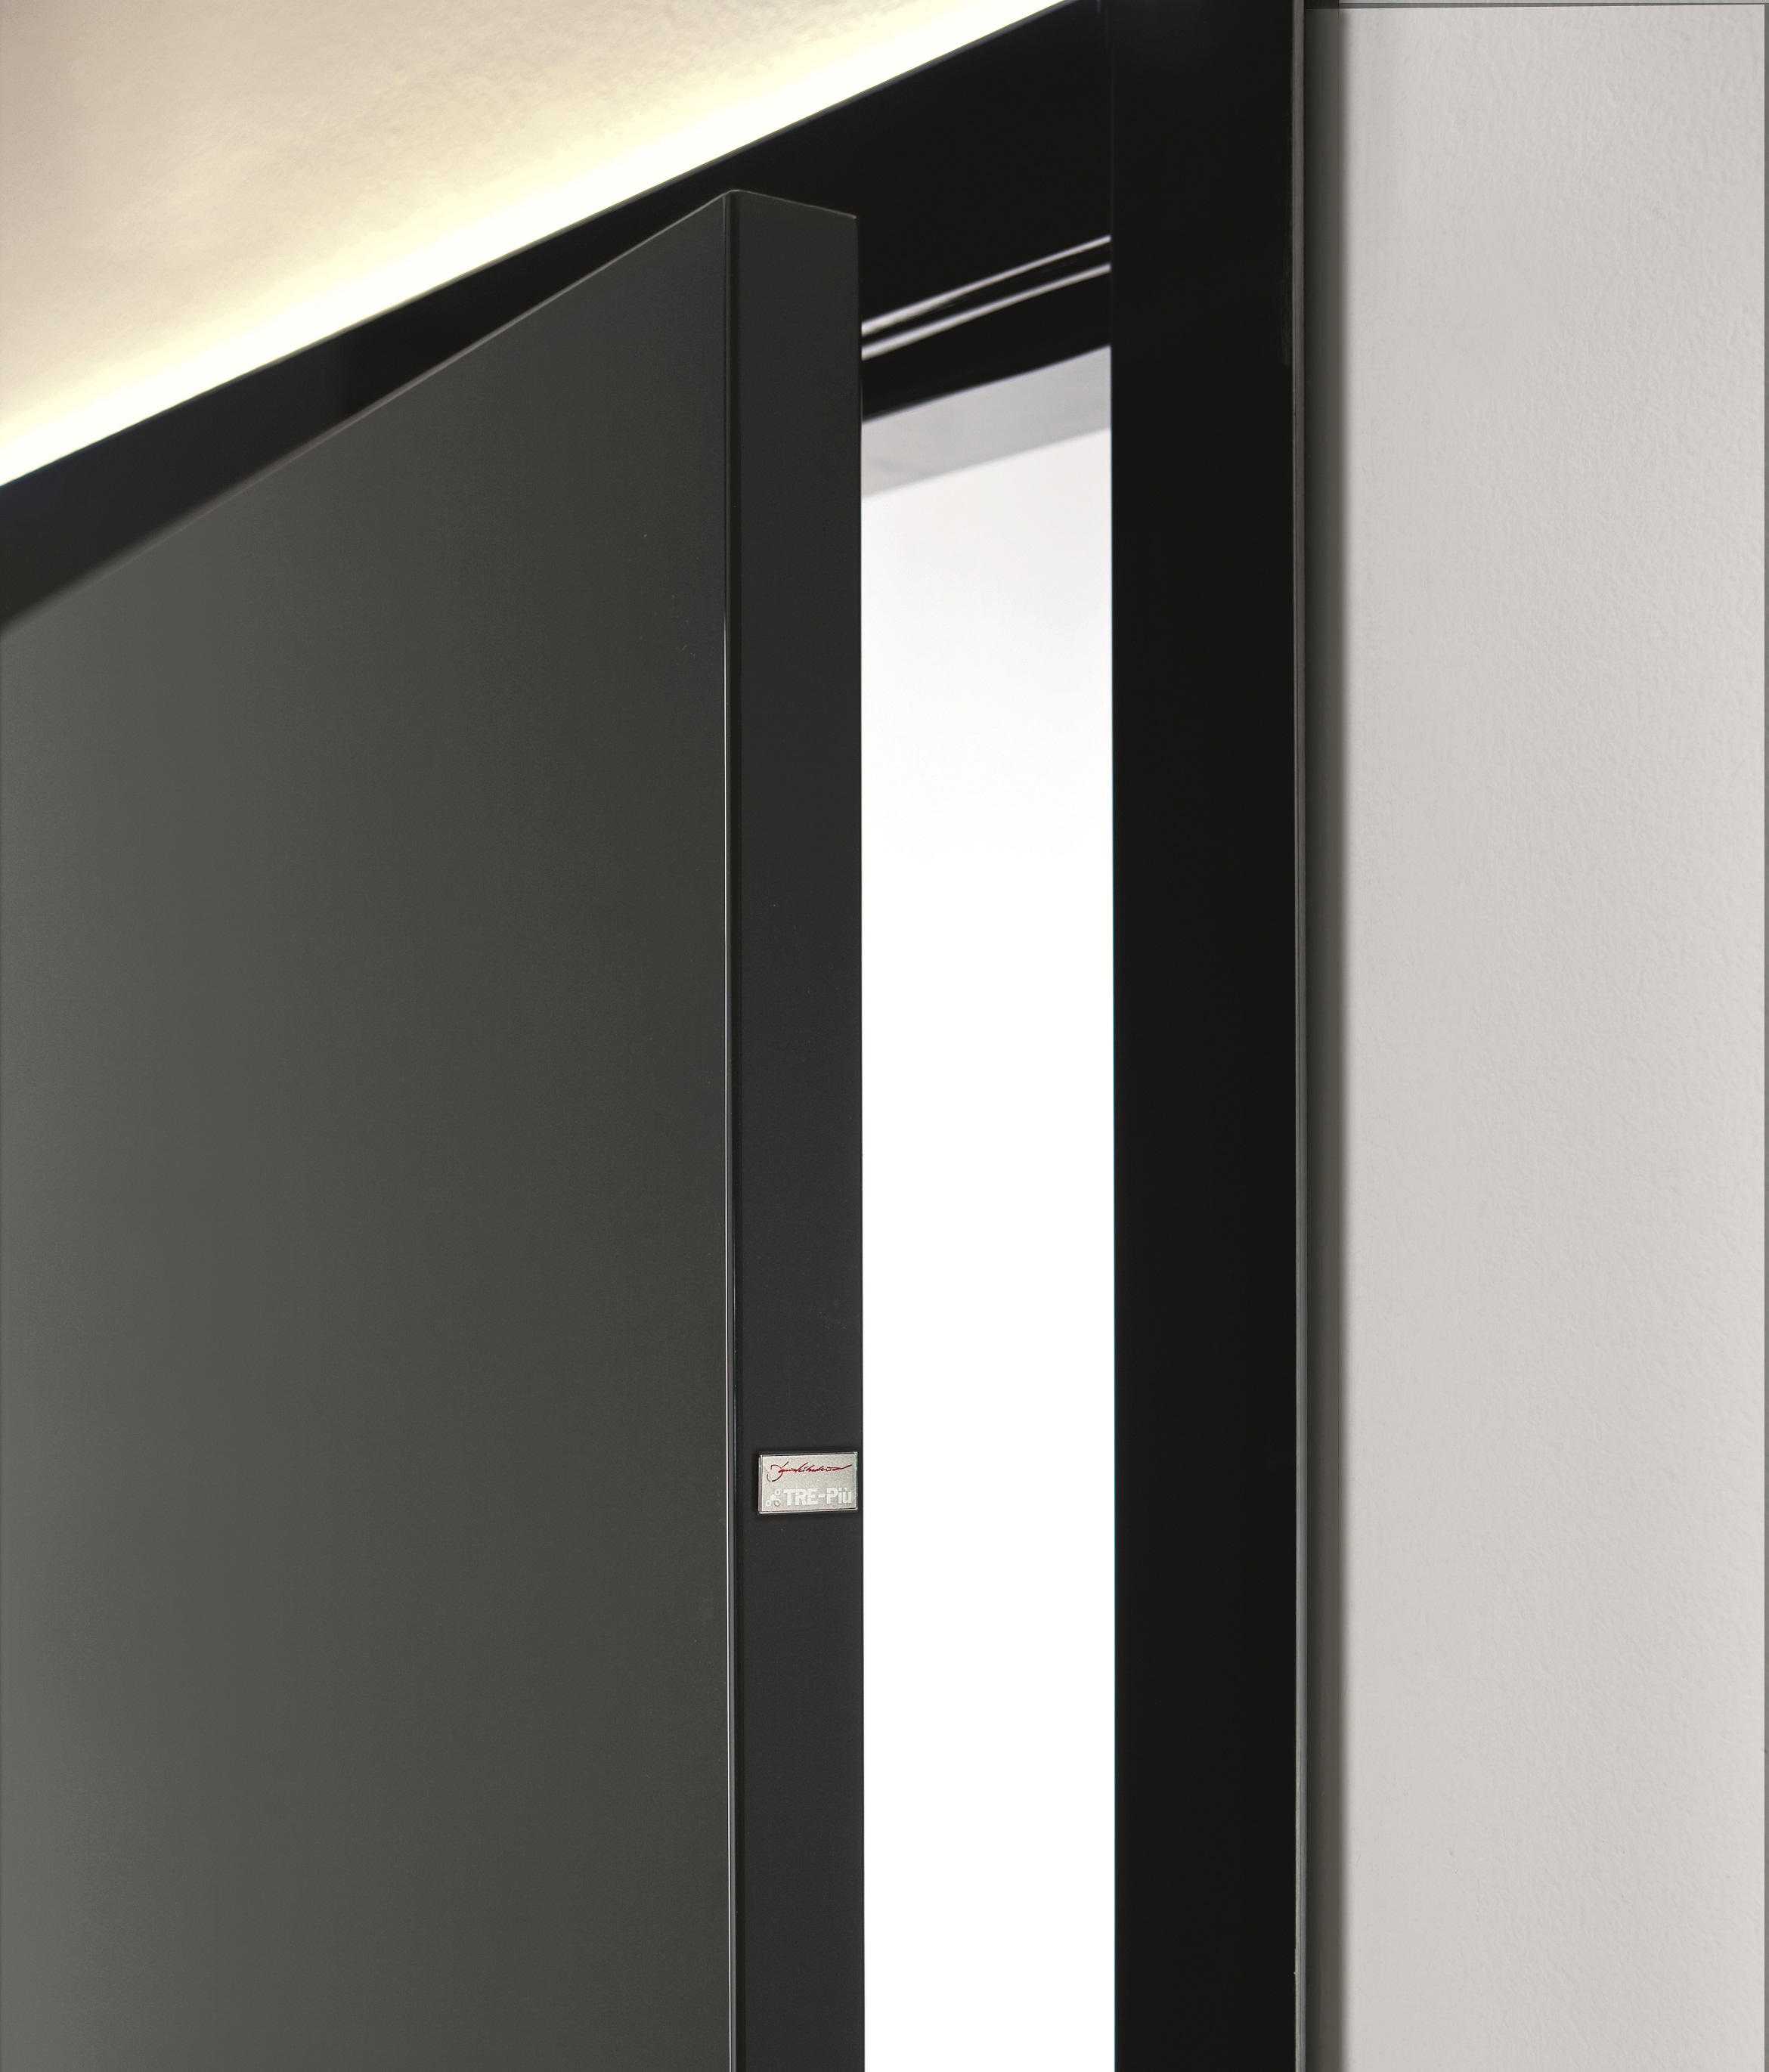 IDEA - Internal doors from TRE-P & TRE-Più | Architonic